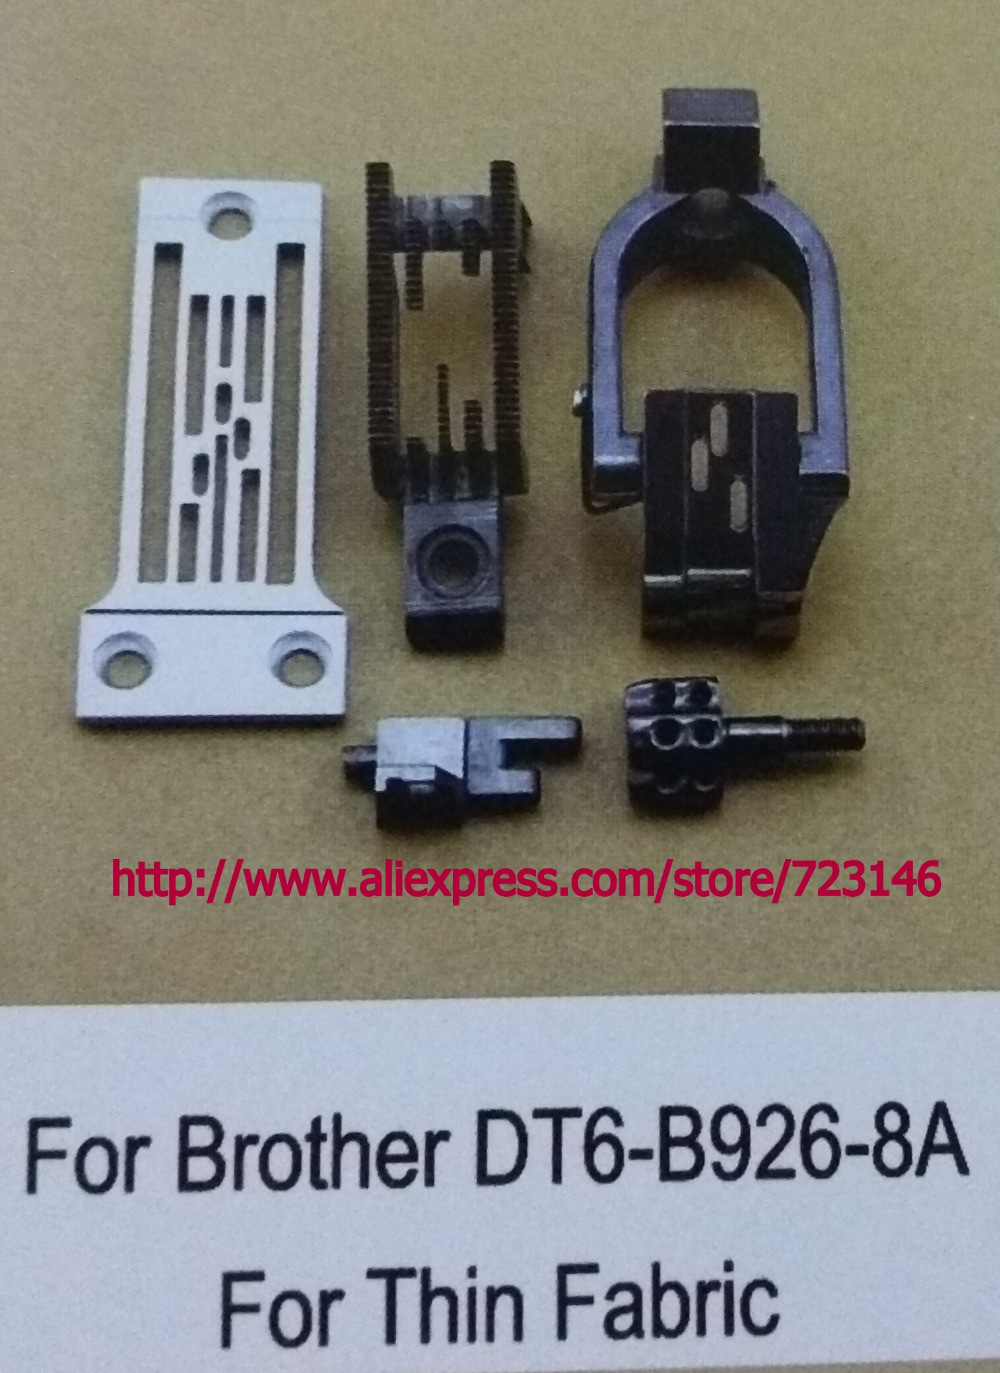 GAUGE SET for Brother DT6 B926 8B THIN FABRIC INDUSTRIAL SEWING MACHINE